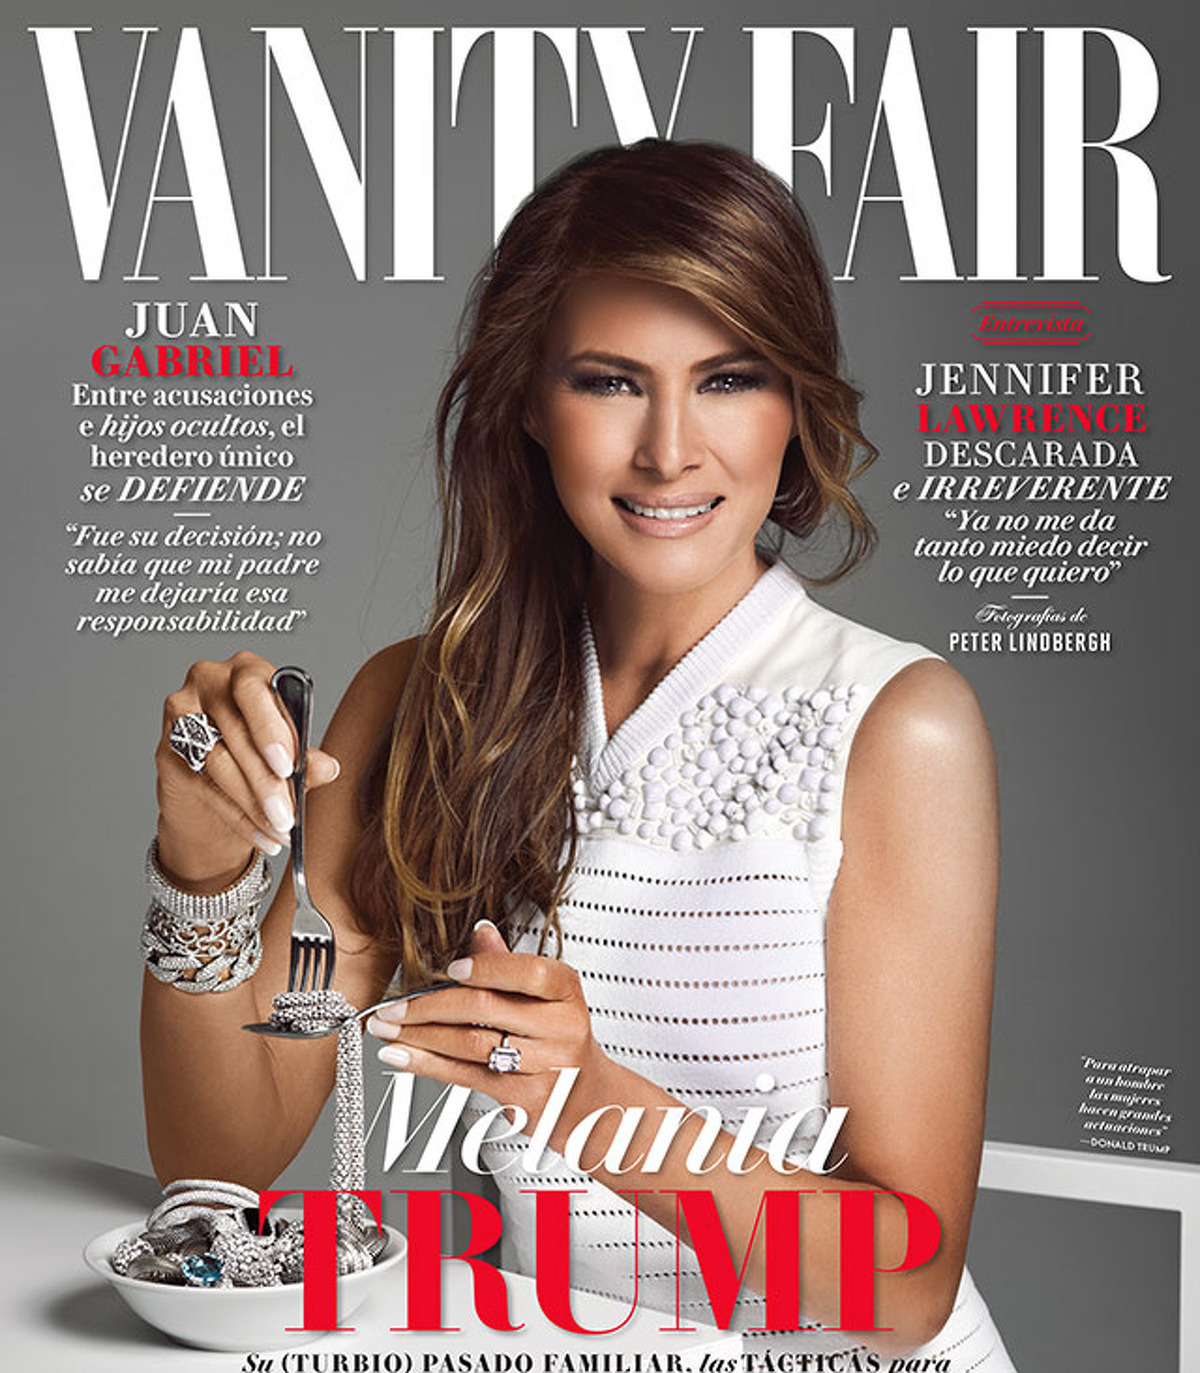 PHOTOS: Controversial magazine covers First lady Melania Trump appears to eat a spaghetti strand made of diamonds on the cover of Vanity Fair Mexico at a time when her husband, President Donald Trump, is doubling down on his plans to build a border wall. See other recent controversial magazine covers ...